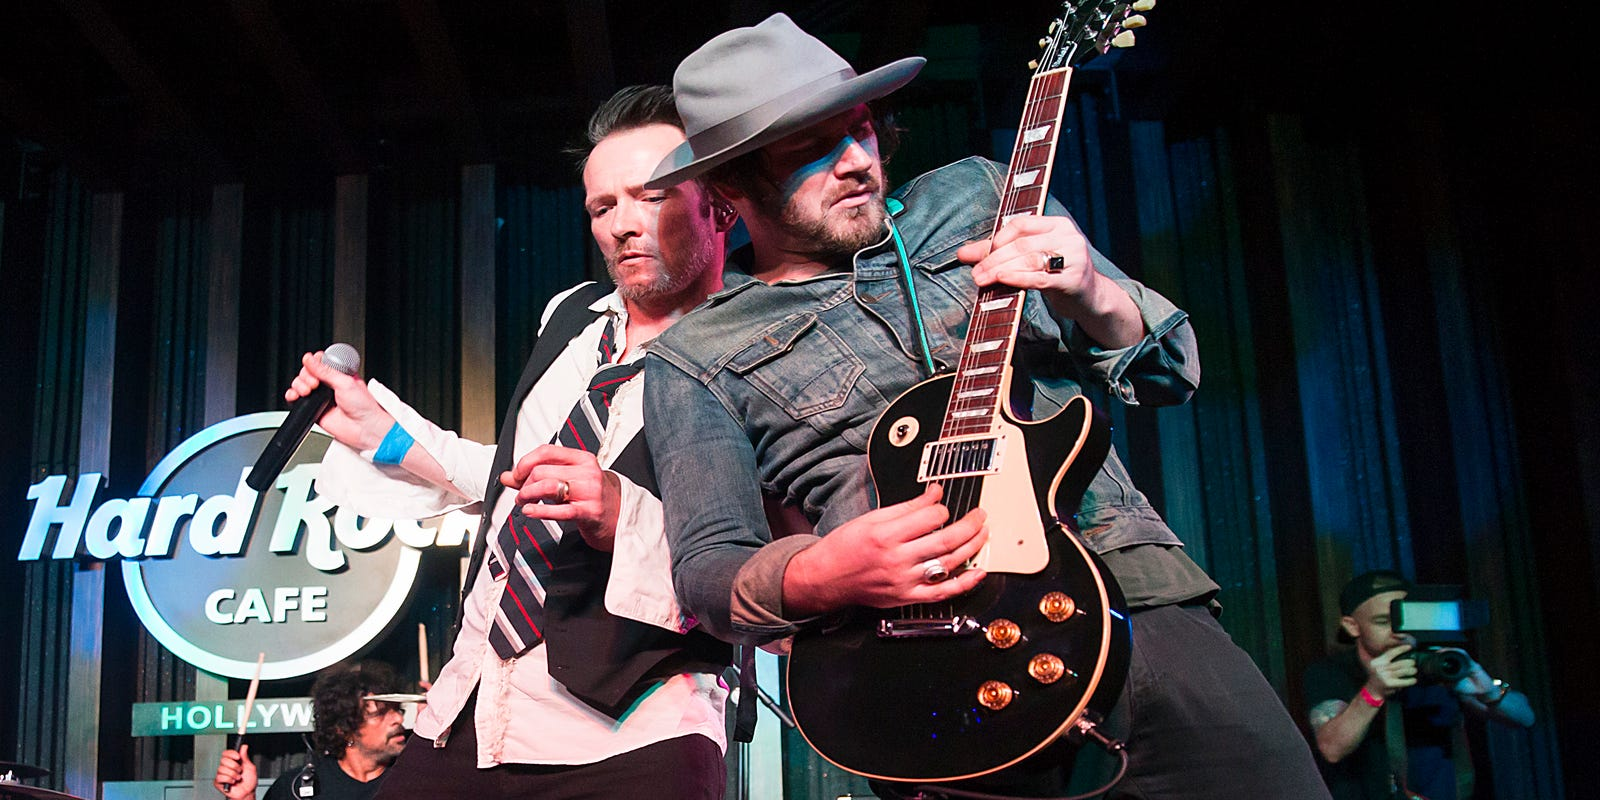 Jeremy Brown Scott Weiland The Wildabouts Guitarist Dies At 34 Radio Wave Diagram Http Hollywoodbollywood Co In Hoadmin